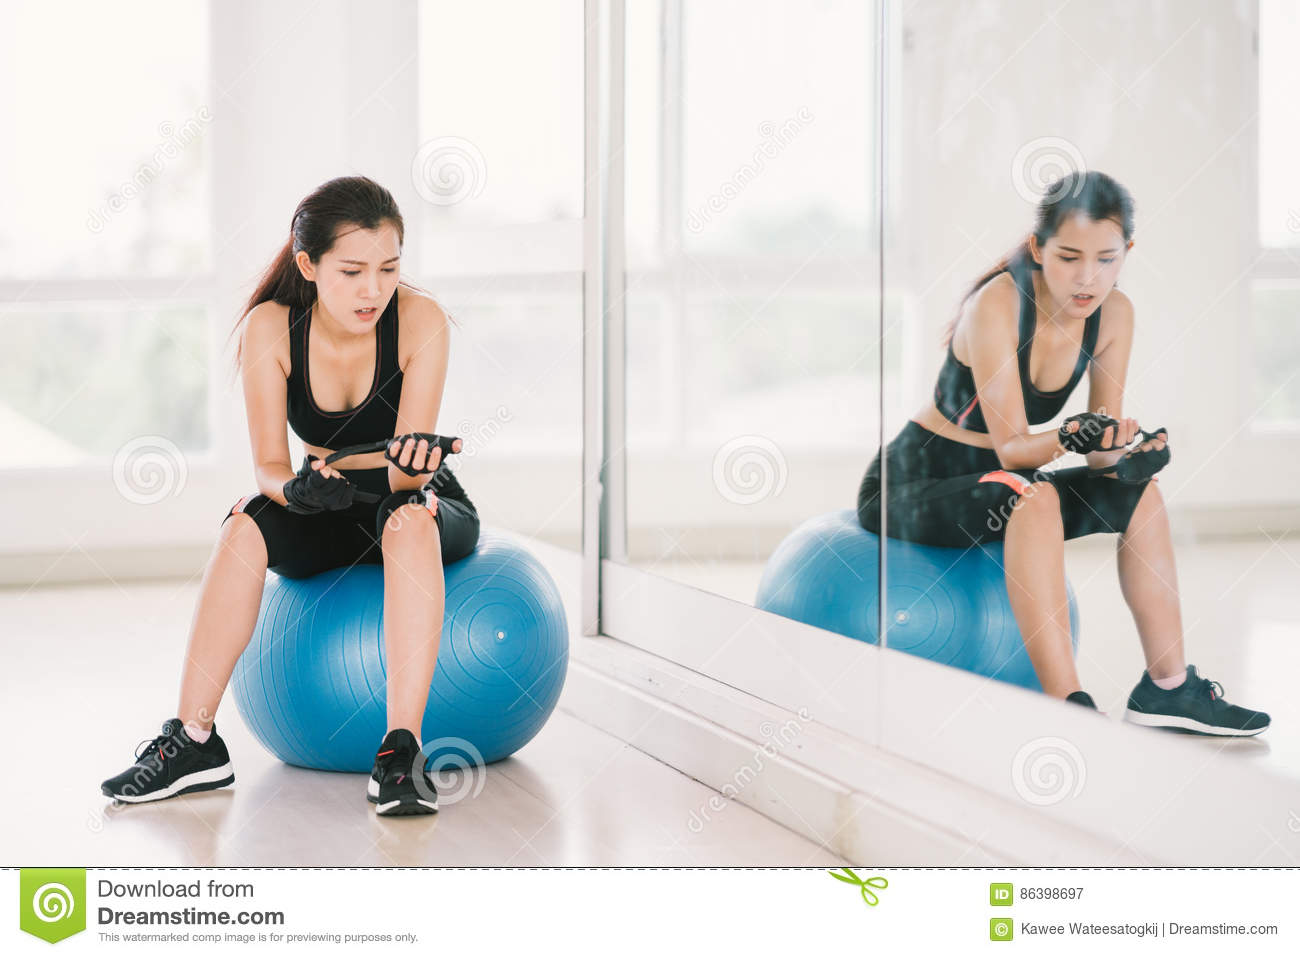 Young and determined Asian girl on fitness ball at gym with mirror, sport and healthy lifestyle concept